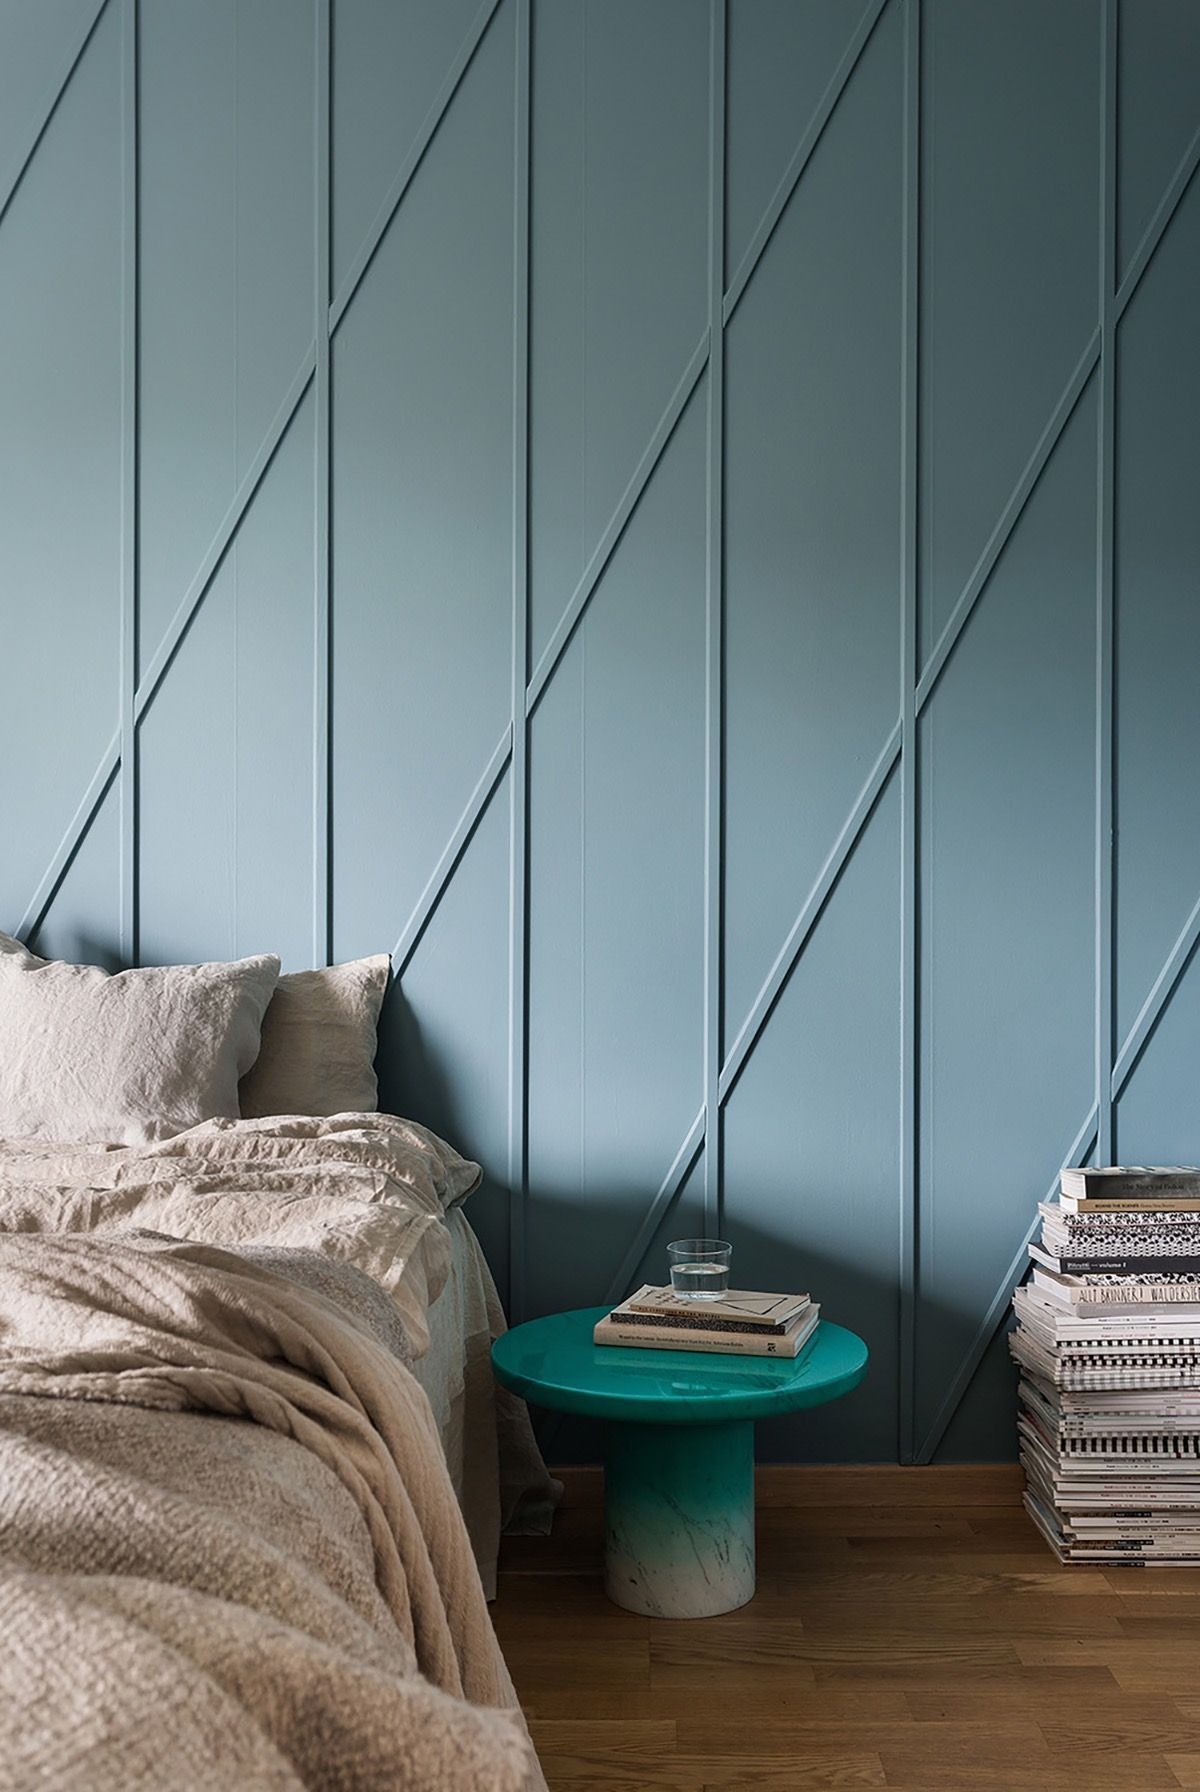 36 accent wall ideas for new creation in your house with on wall trim id=12834